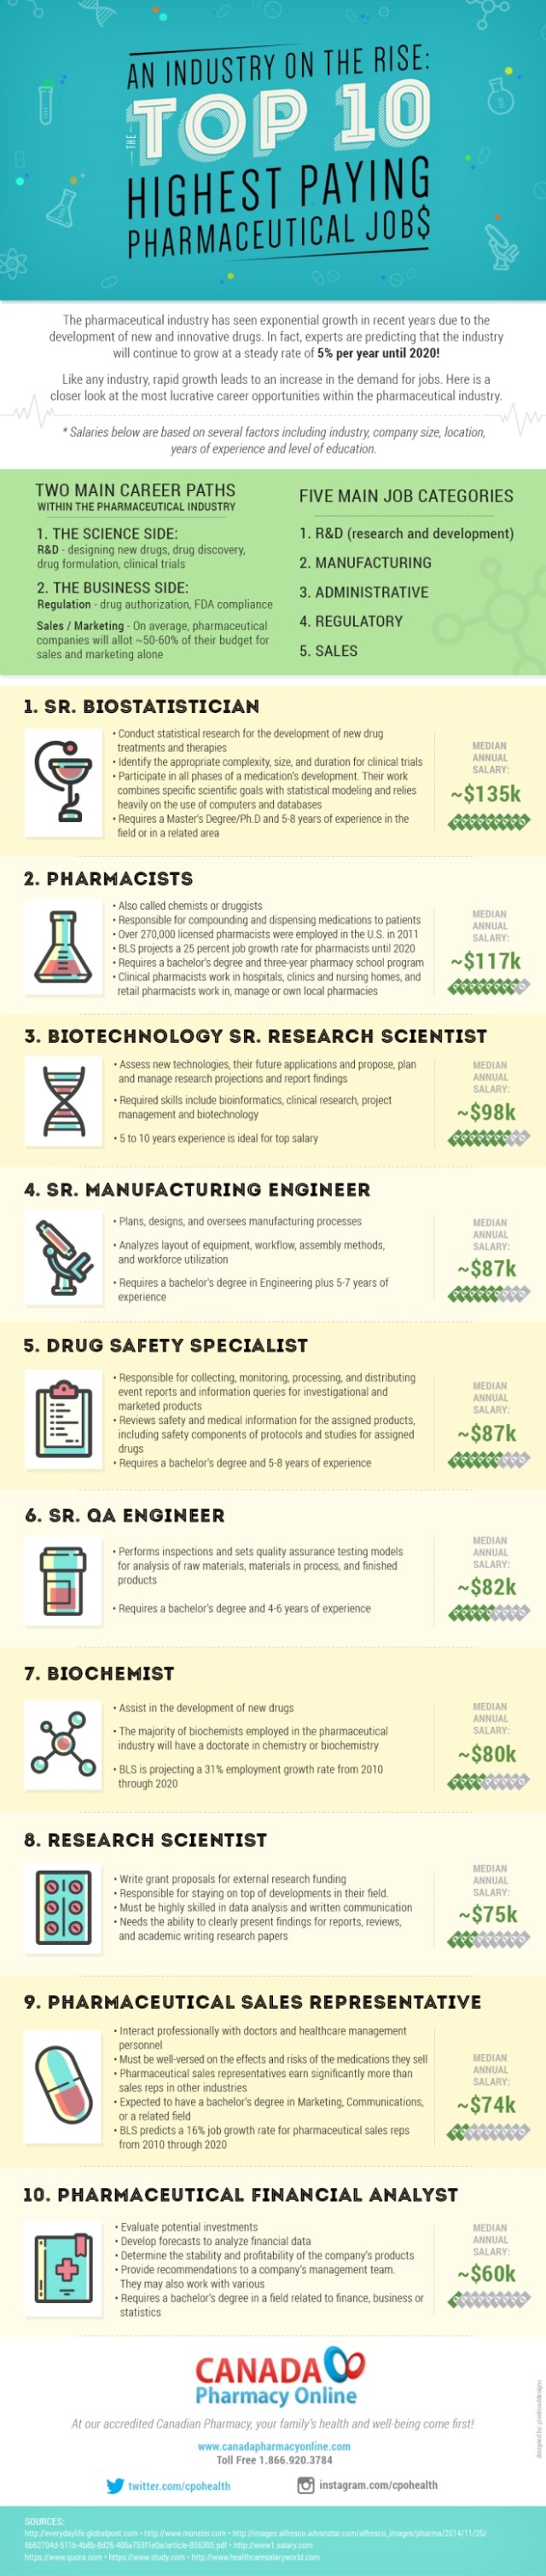 an-industry-on-the-rise-the-top-10-highest-paying-pharmaceutical-jobs_568e04986433a